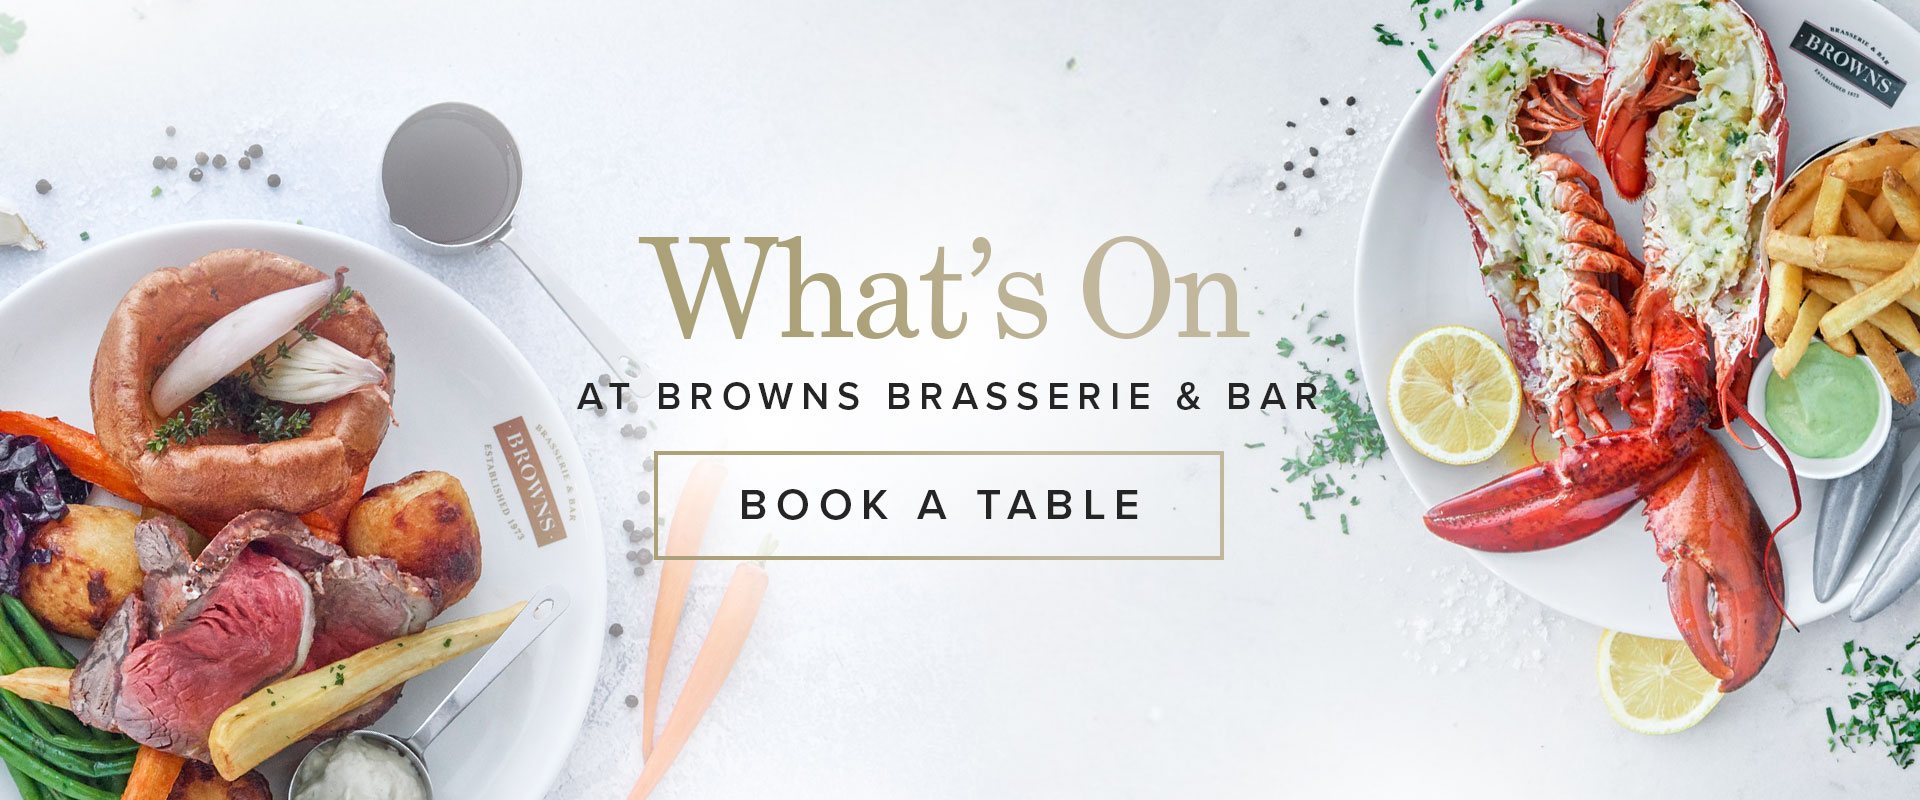 What's on at Browns Liverpool | Browns